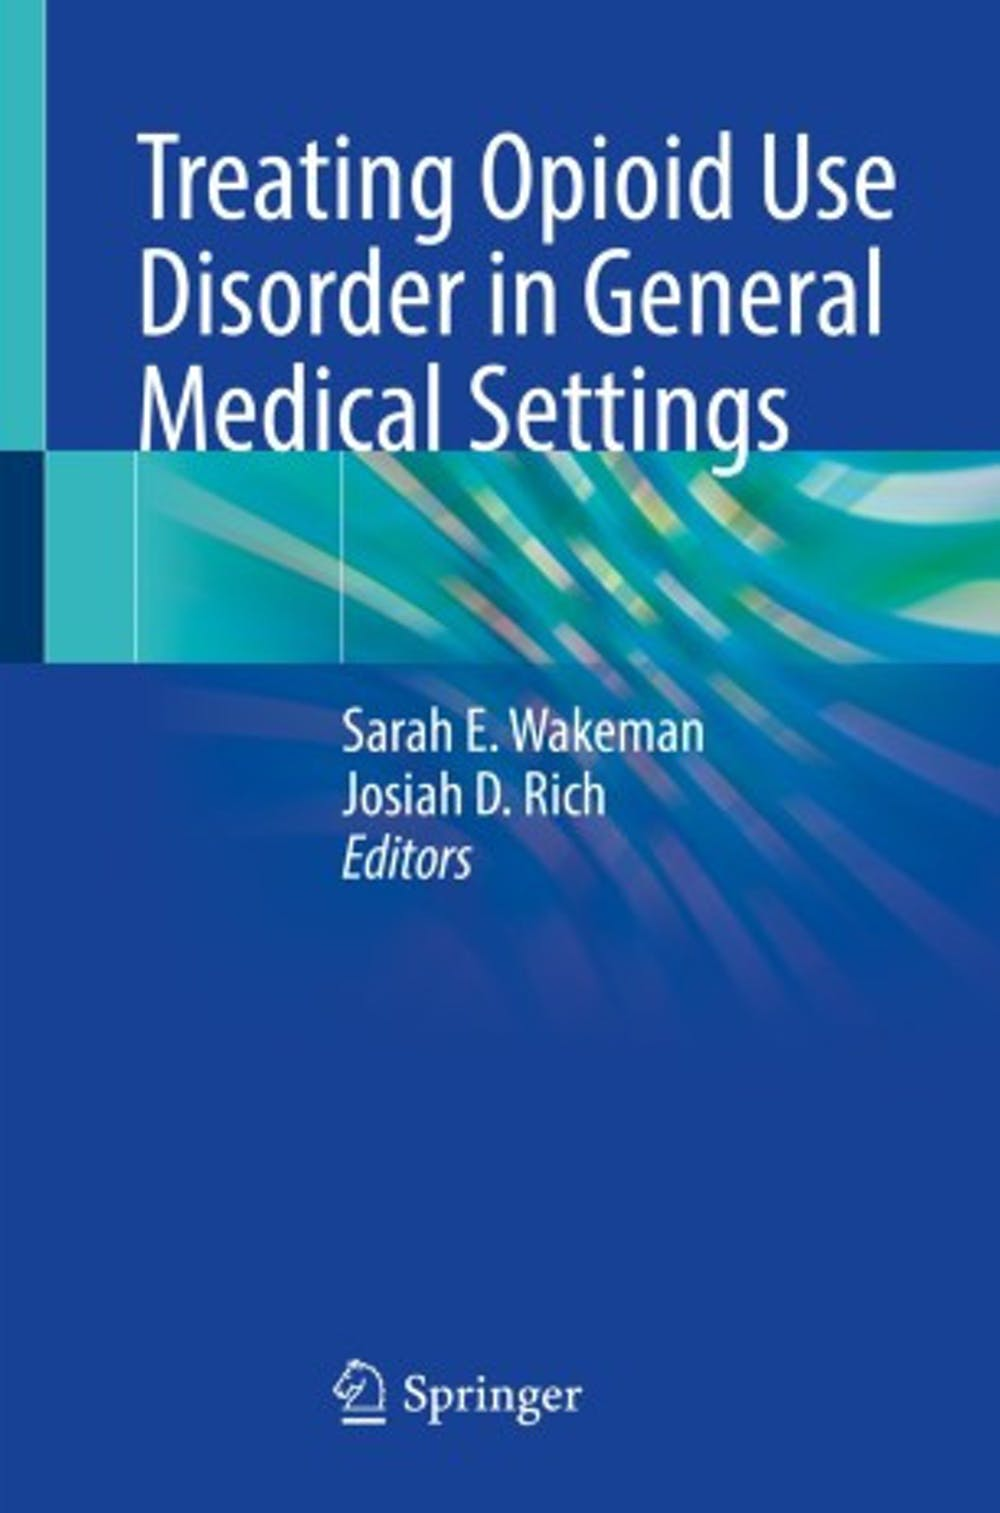 <p>The book's goal is to create an accessible knowledge base for general physicians to feel confident about addressing opioid use disorder.</p>